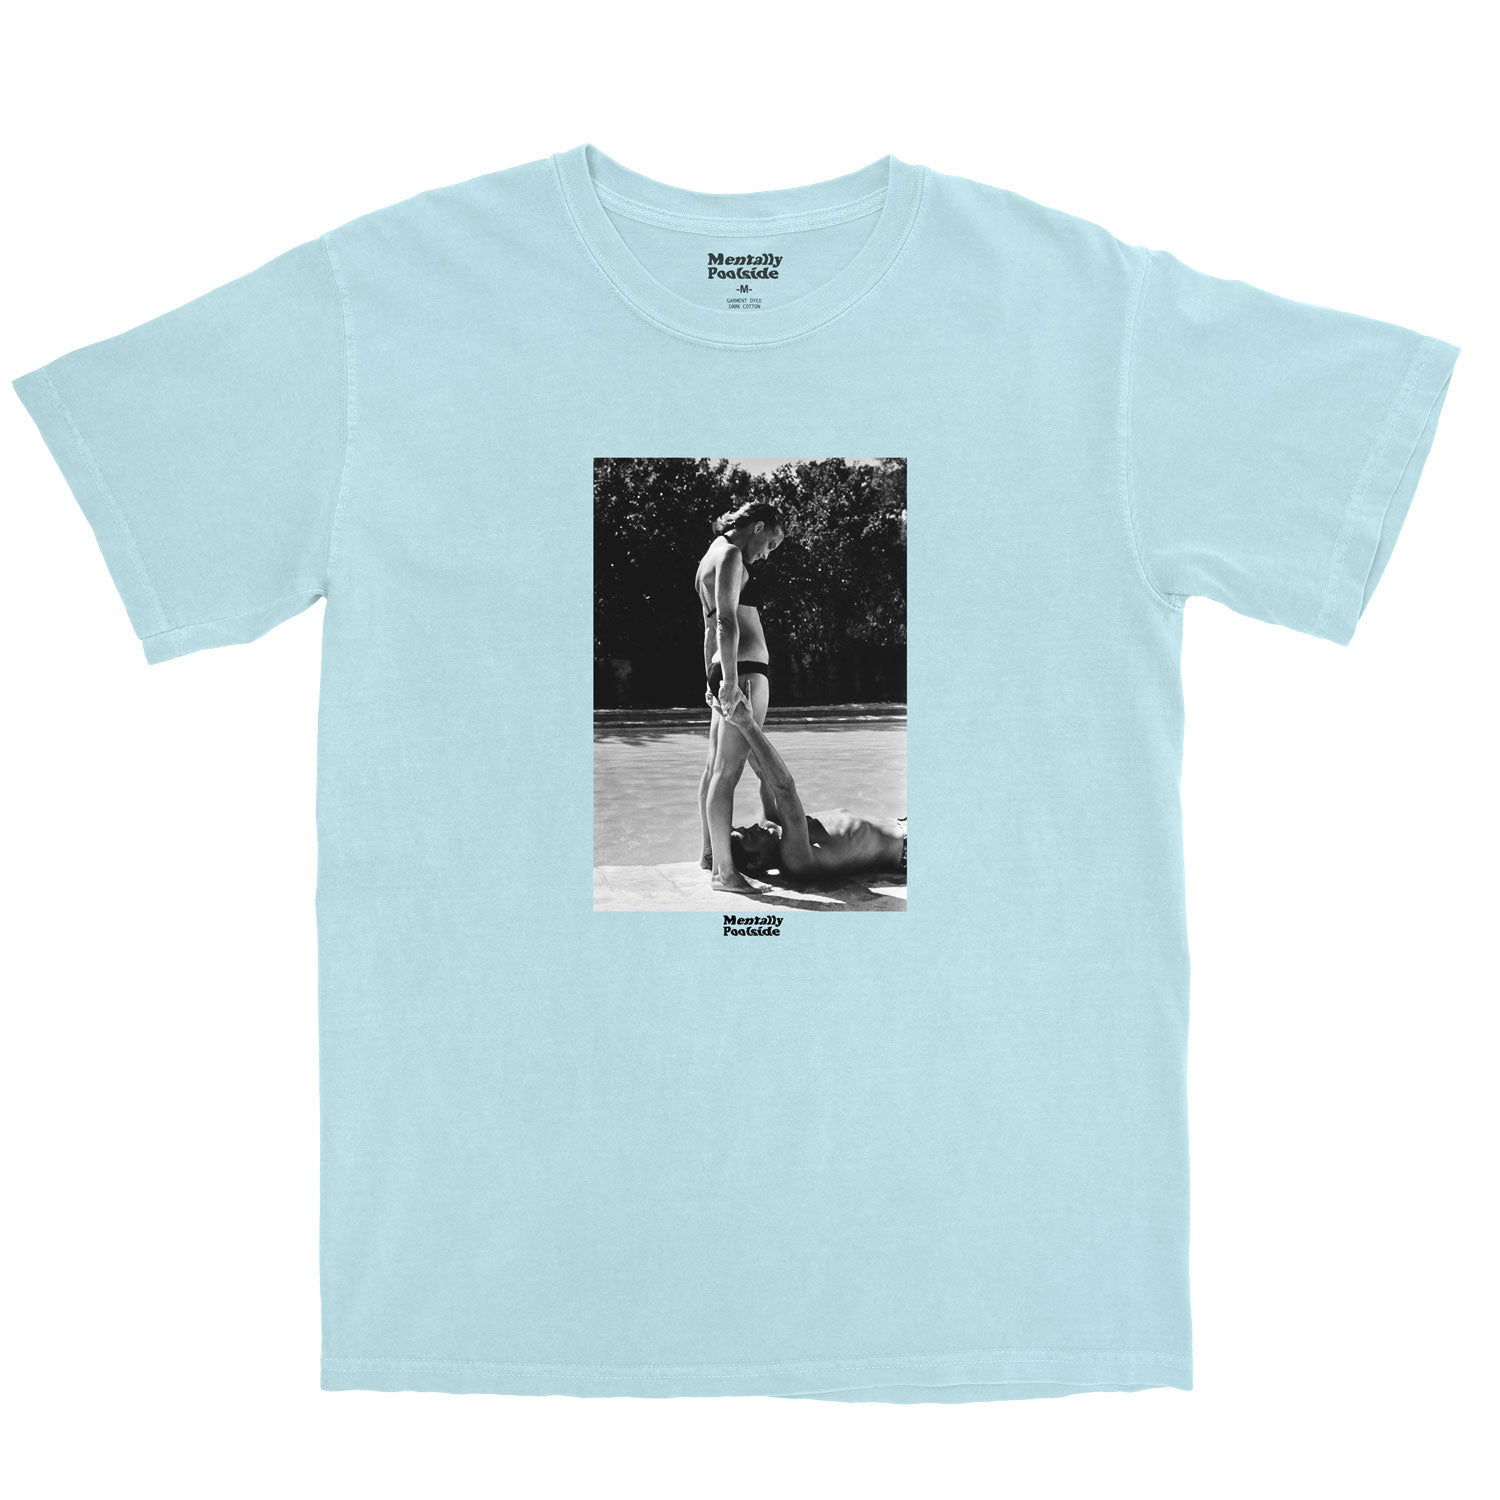 Alain De Pool-Tee shirt-Comfort colors-Chambray-S-Mentally Poolside